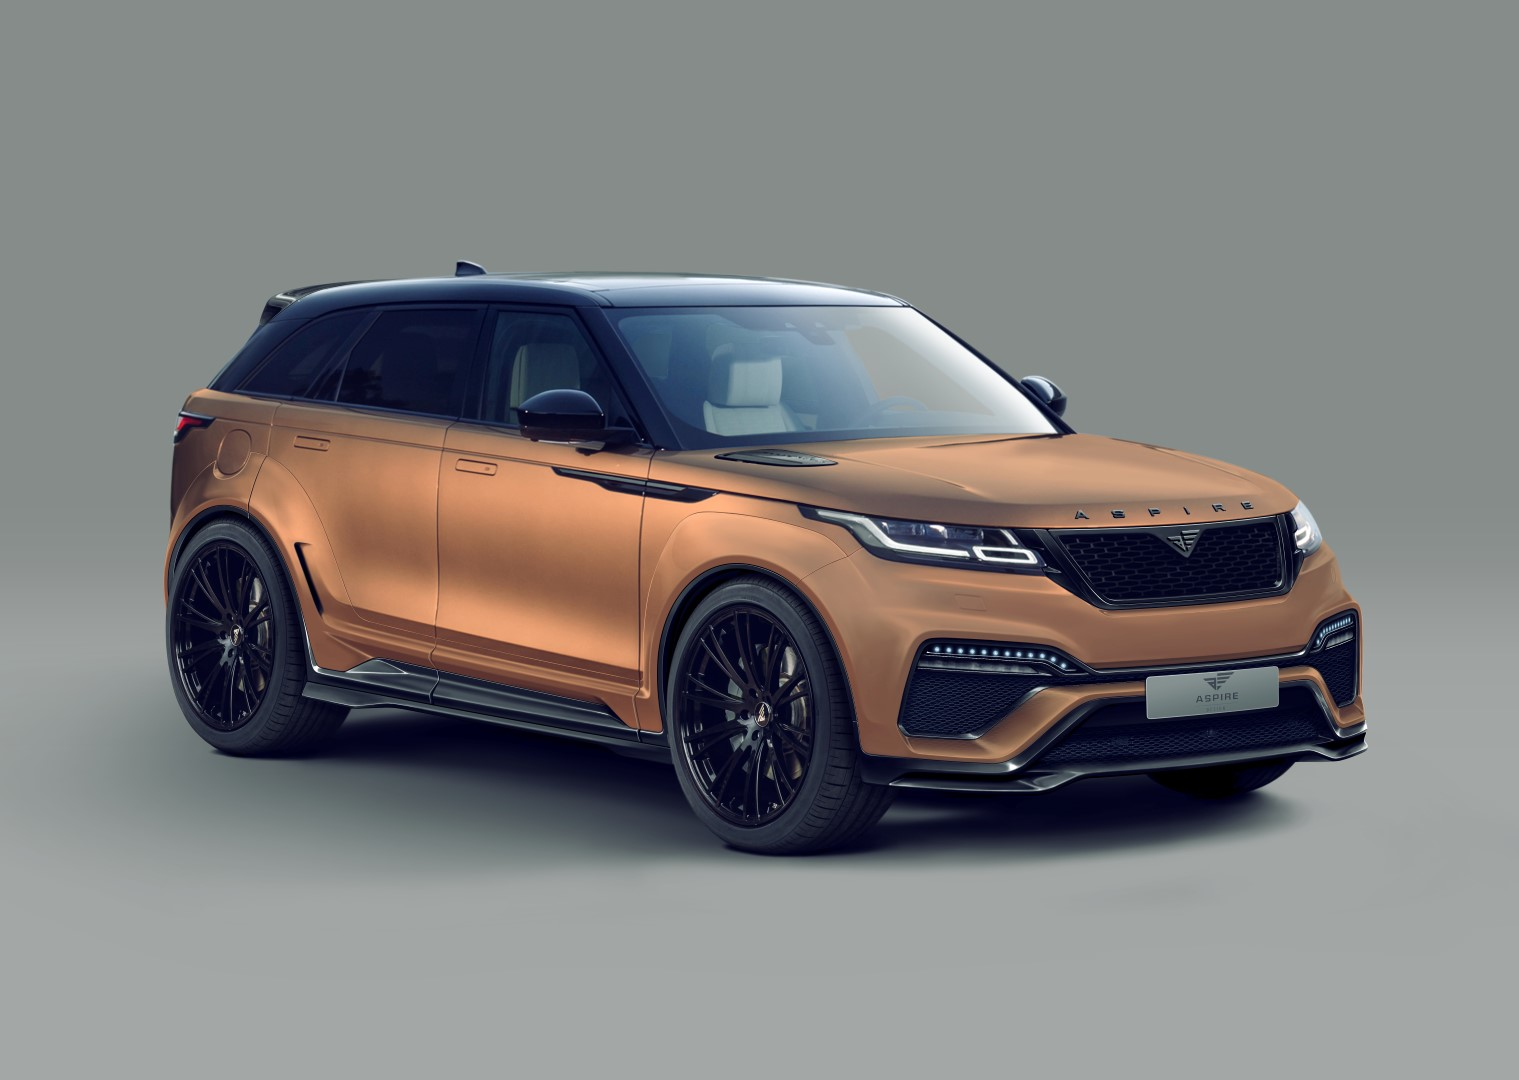 wide body range rover velar thanks to aspire design. Black Bedroom Furniture Sets. Home Design Ideas